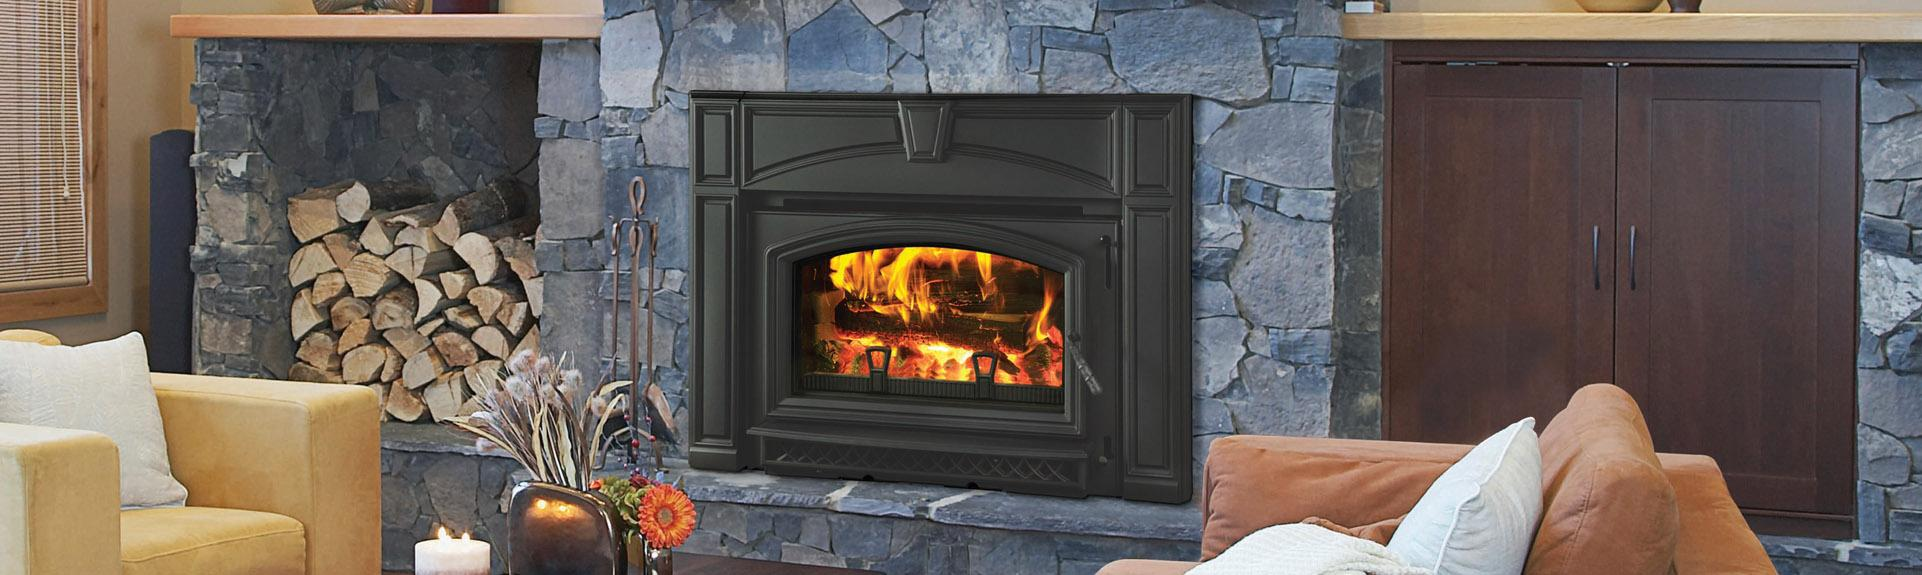 stoll fireplace doors monmouth county wood stove u0026 fireplace